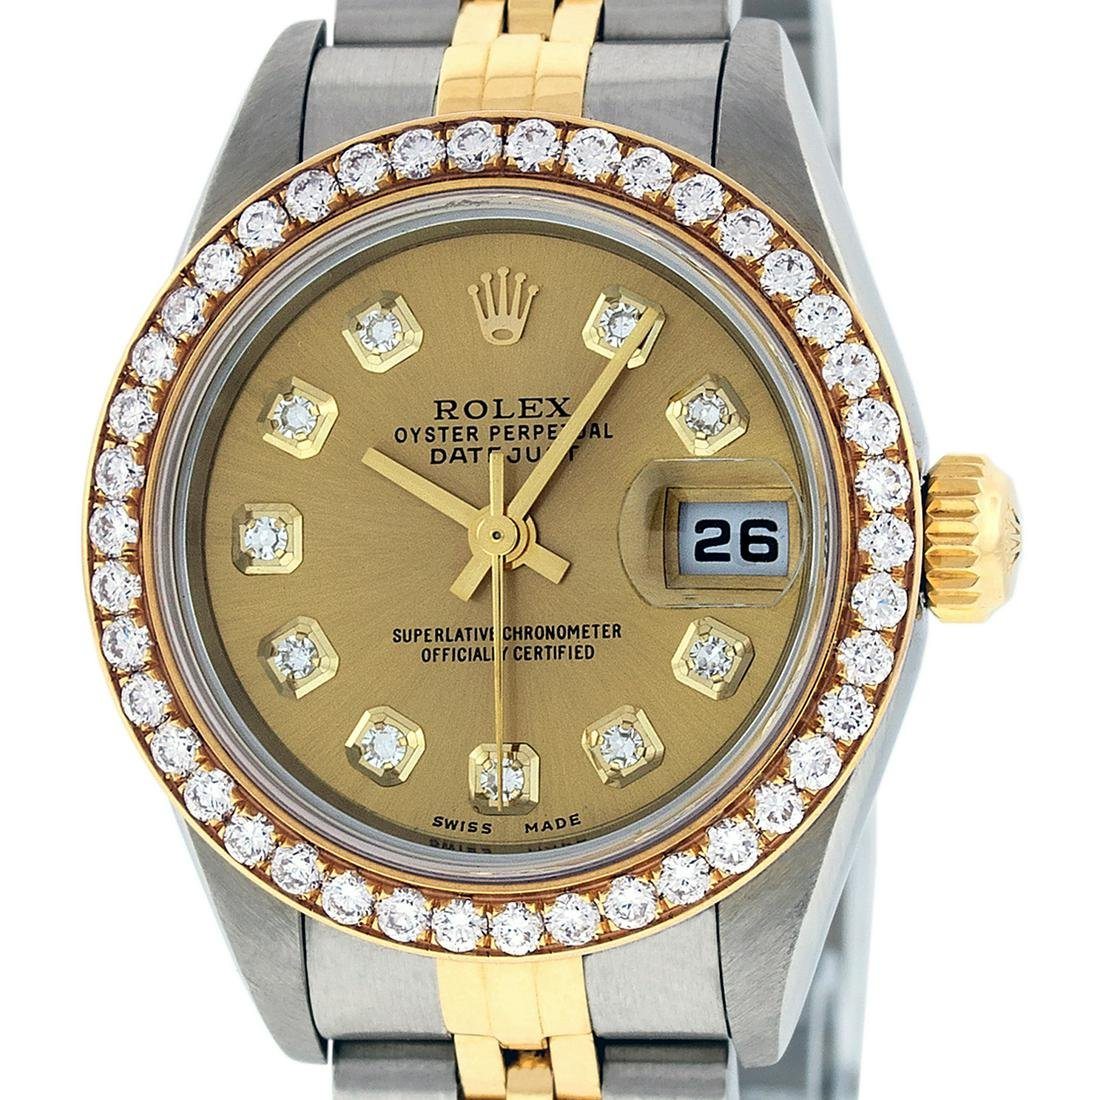 Rolex Ladies Datejust Watch SS & 18K Yellow Gold